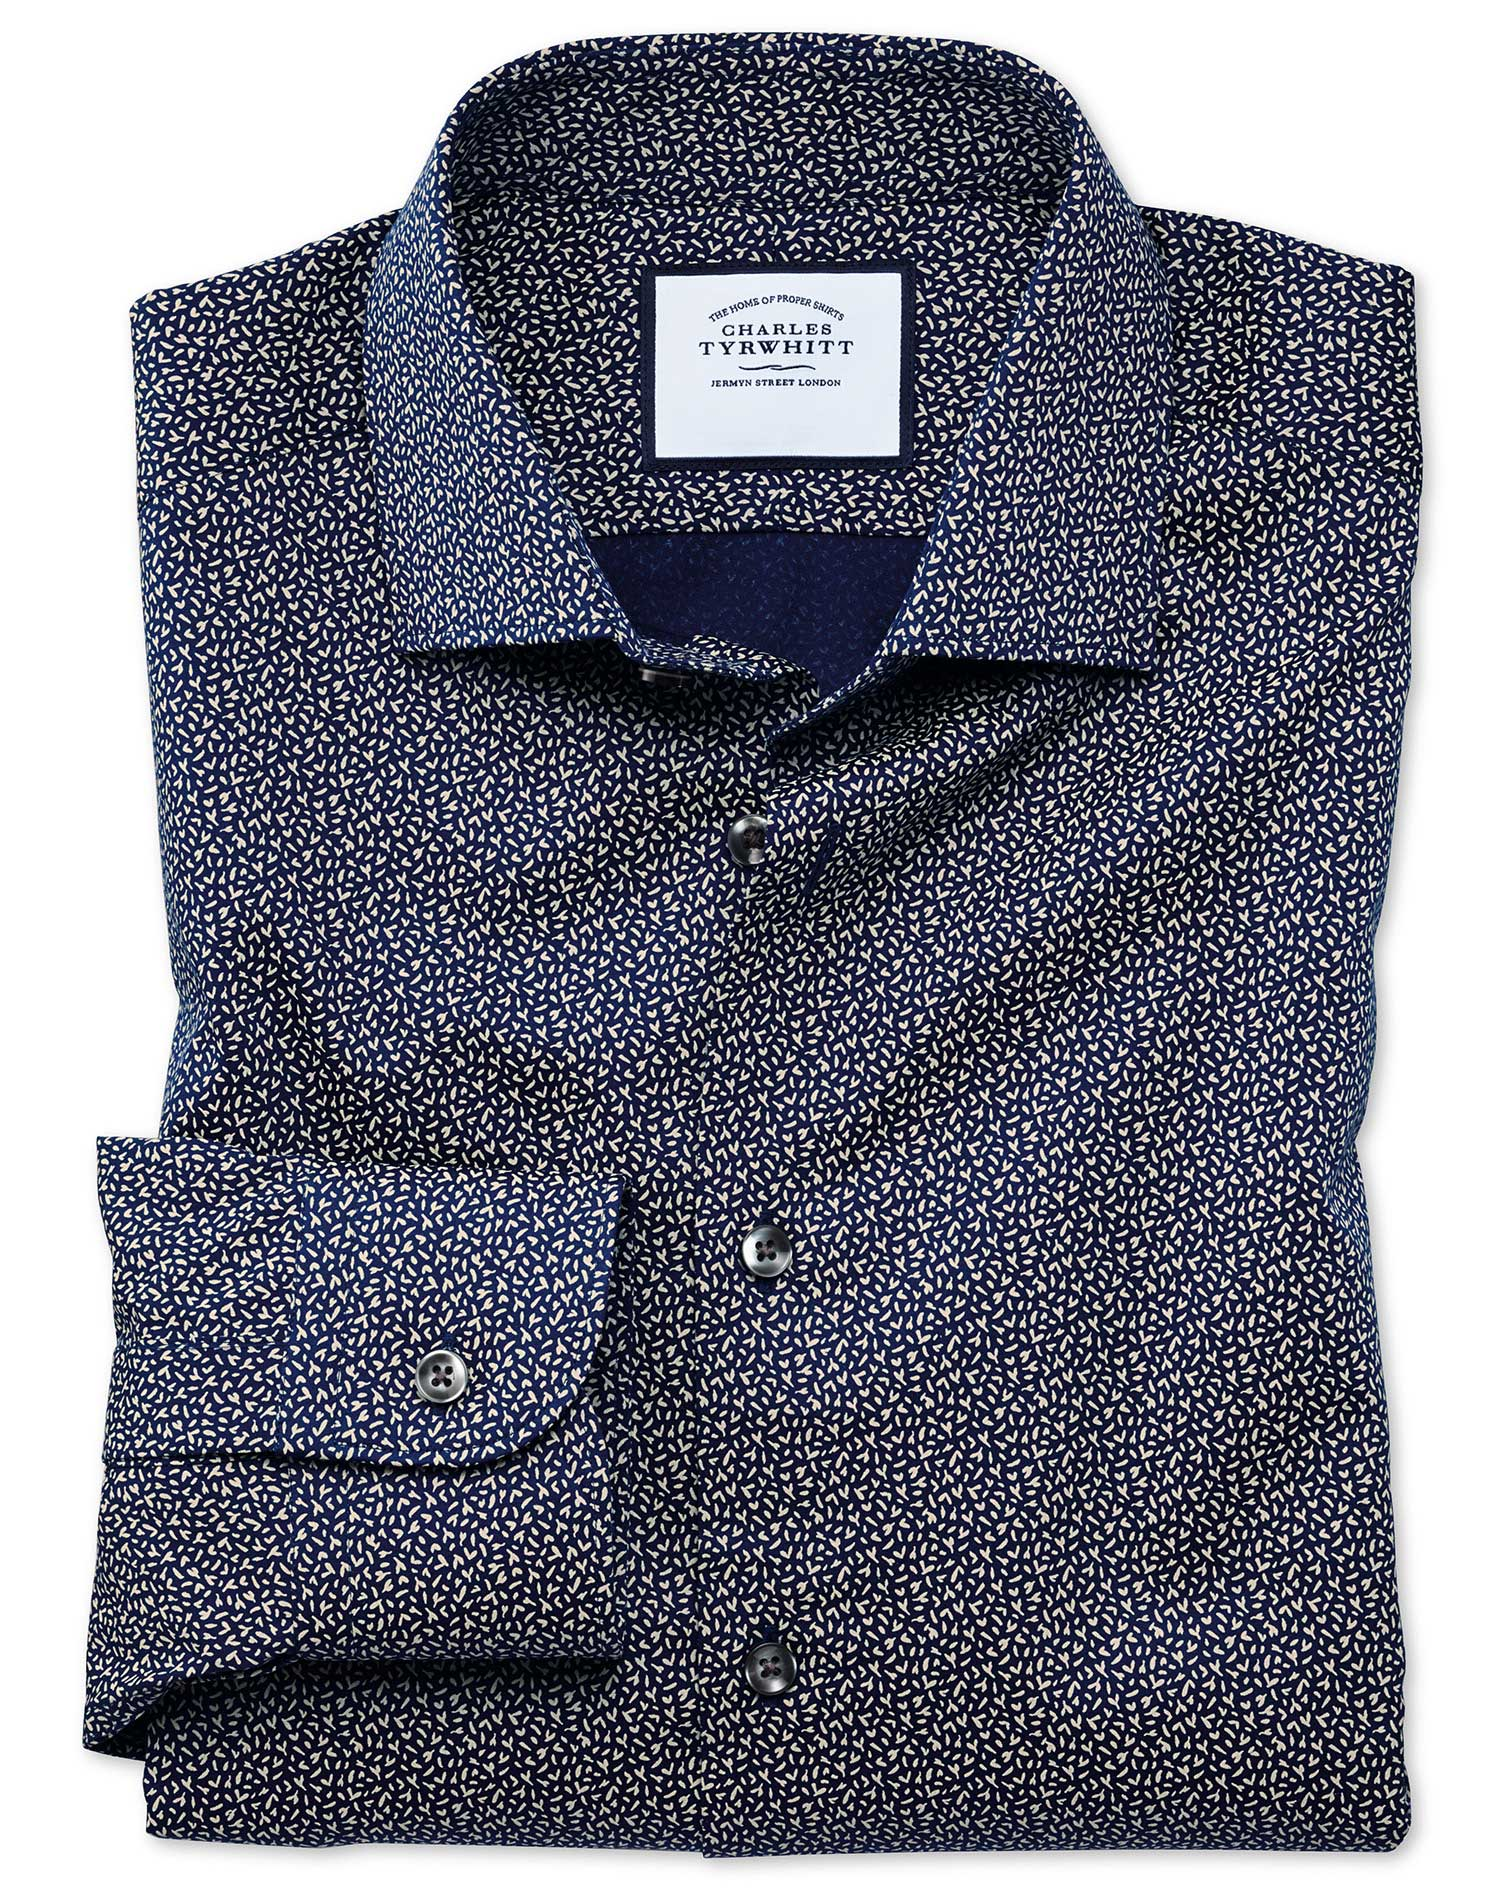 Slim Fit Business Casual Navy and White Print Cotton Formal Shirt Single Cuff Size 17.5/38 by Charle